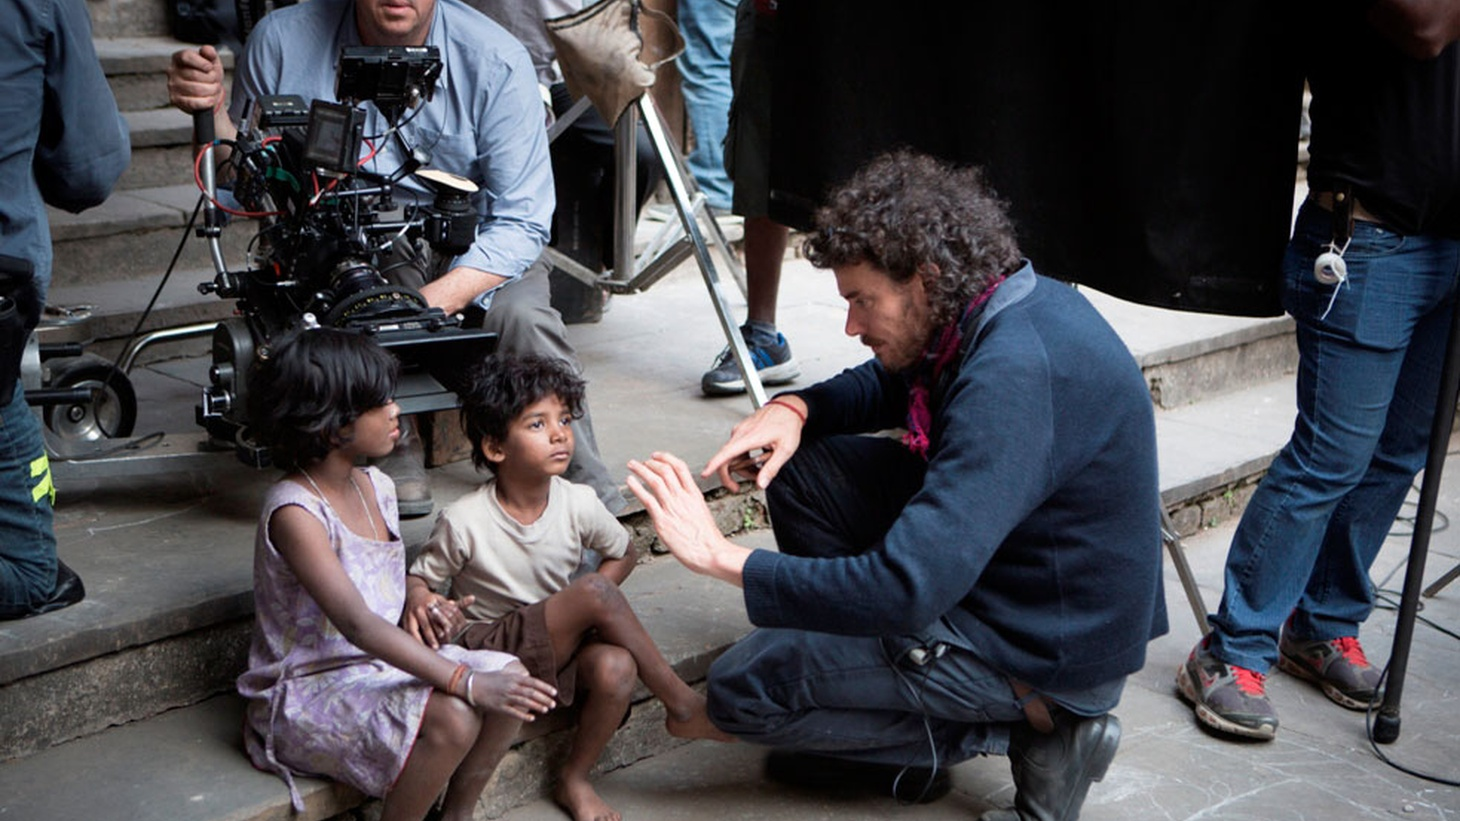 Filmmaker Garth Davis spent years making commercials in Australia before co-directing Top of the Lake with Jane Campion. For his feature film debut, Lion, he's taken on the true story of a boy in India who accidentally gets separated from his family and ends up in Tasmania. He tells us how he came to be at the helm of the film and about casting a five-year old in India and teaching him English along the way.